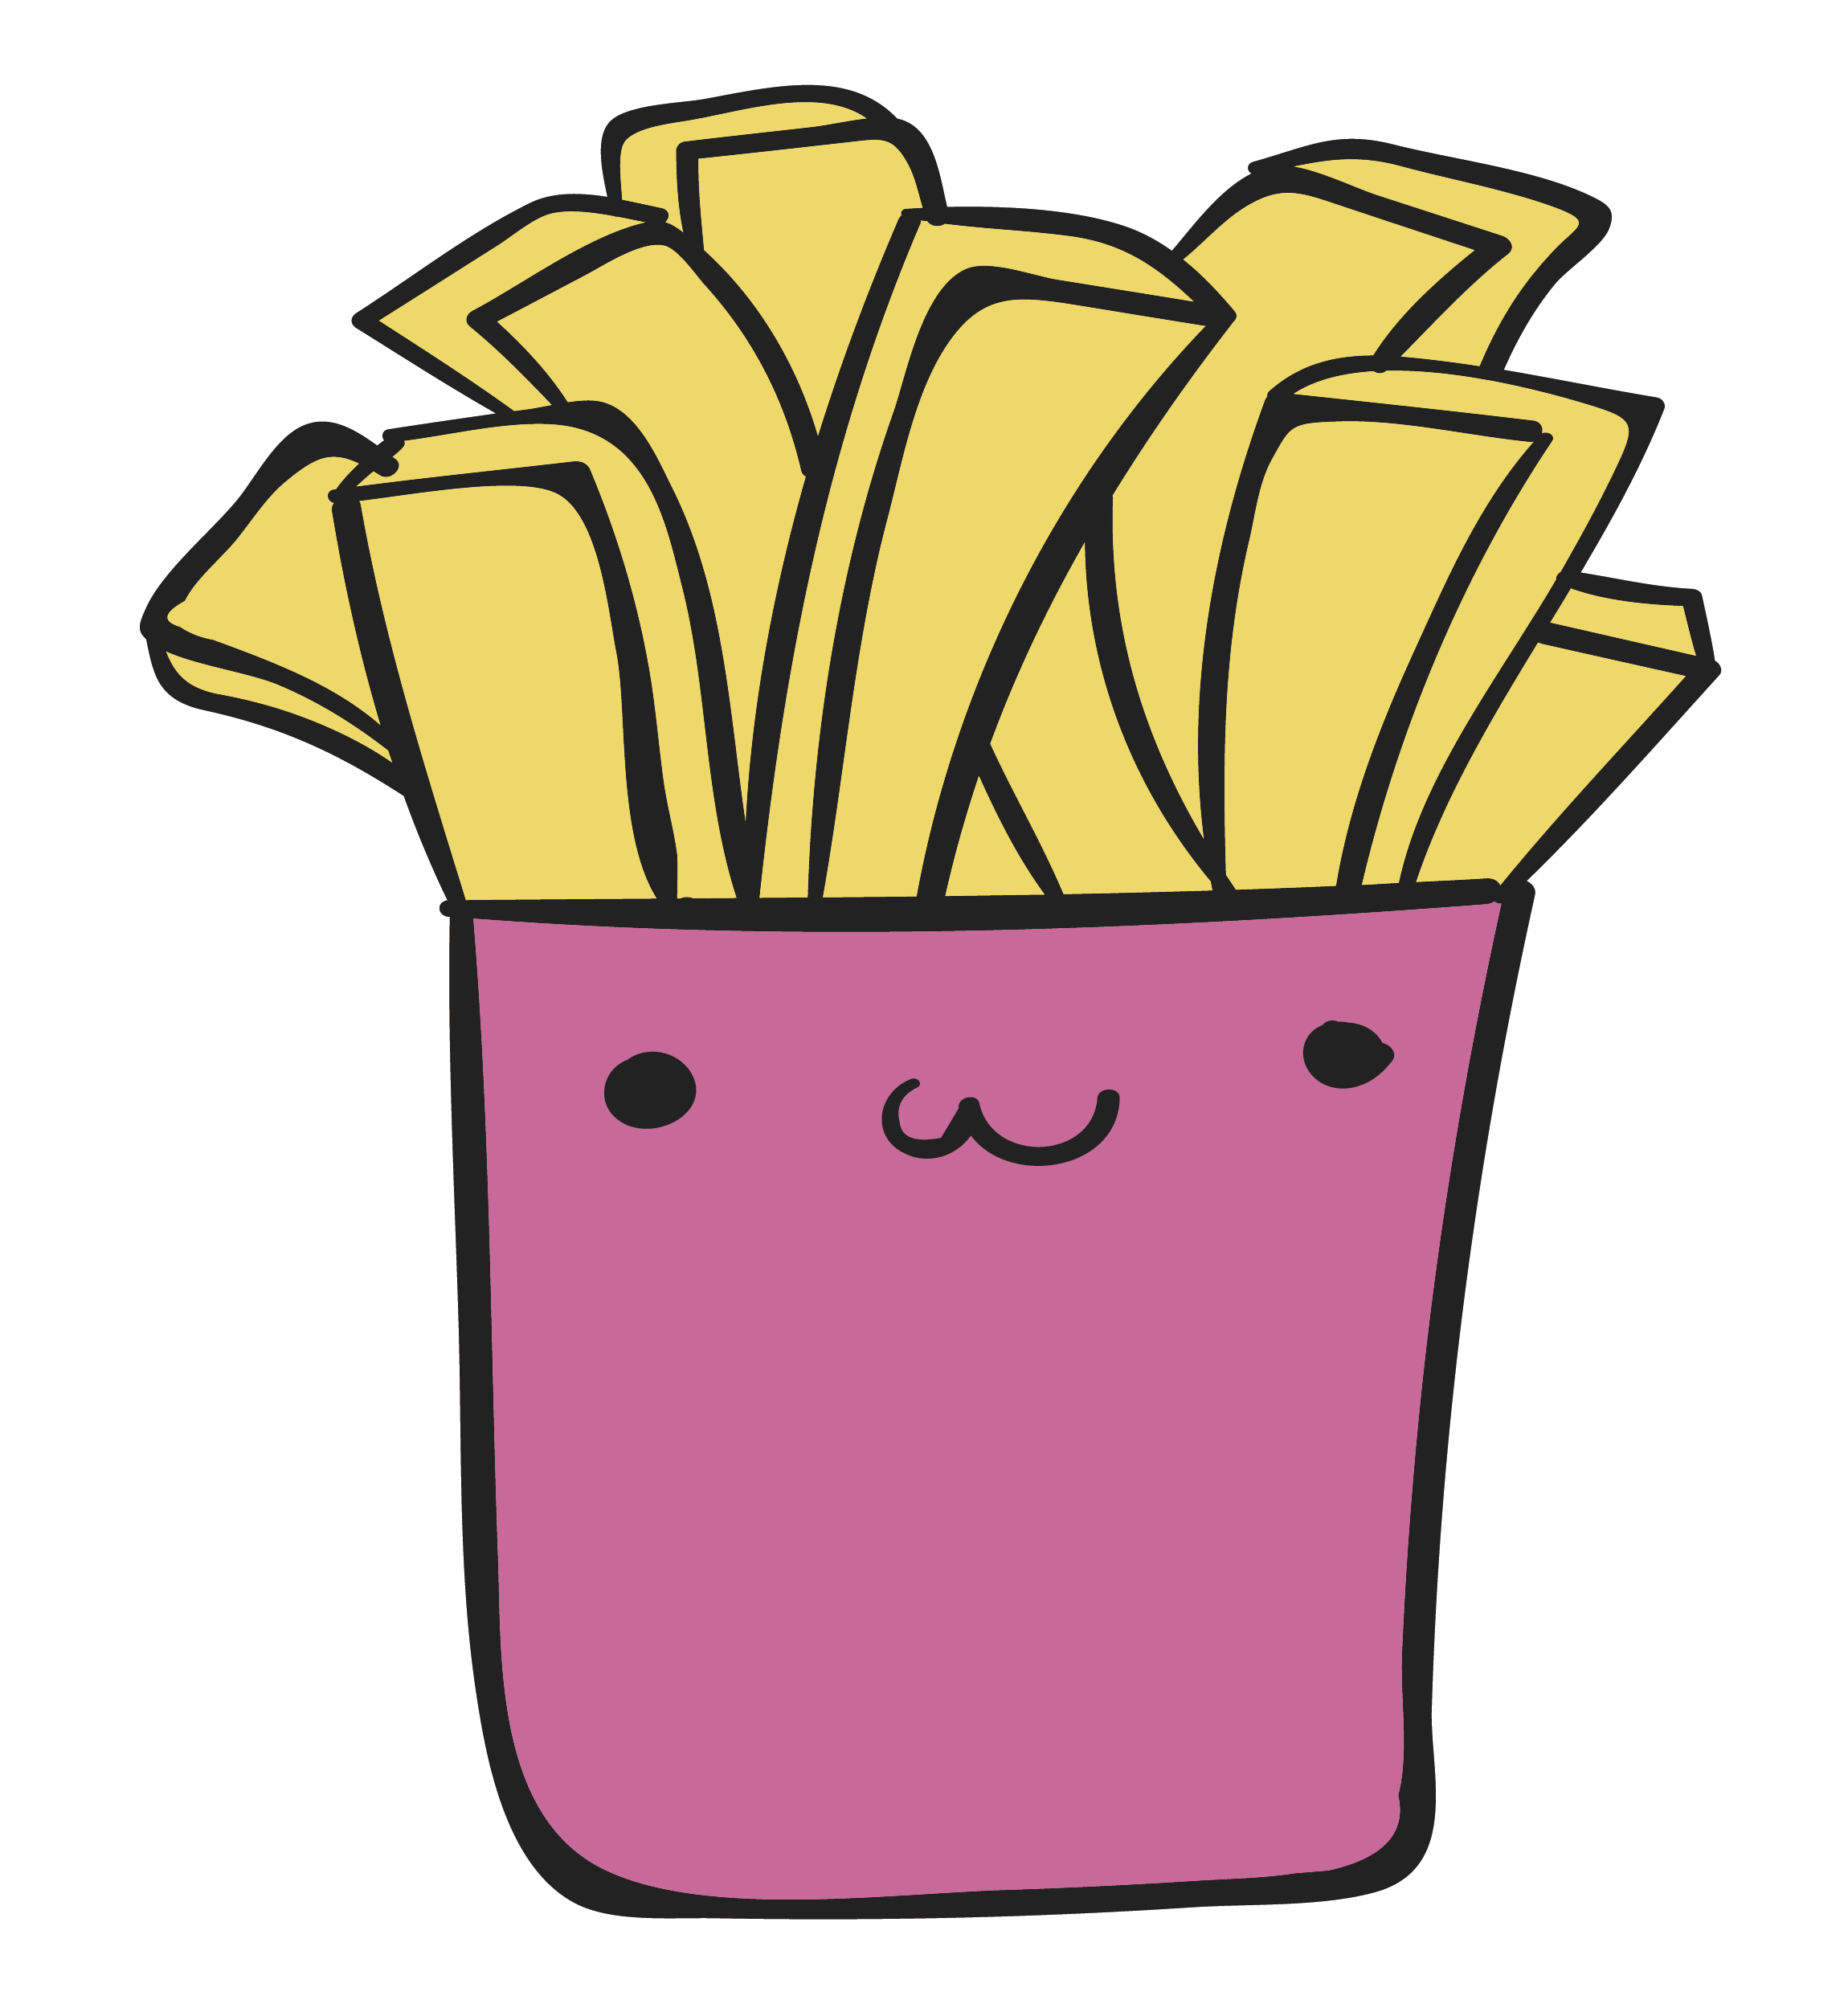 image transparent stock French fries junk food. Chips drawing transparent